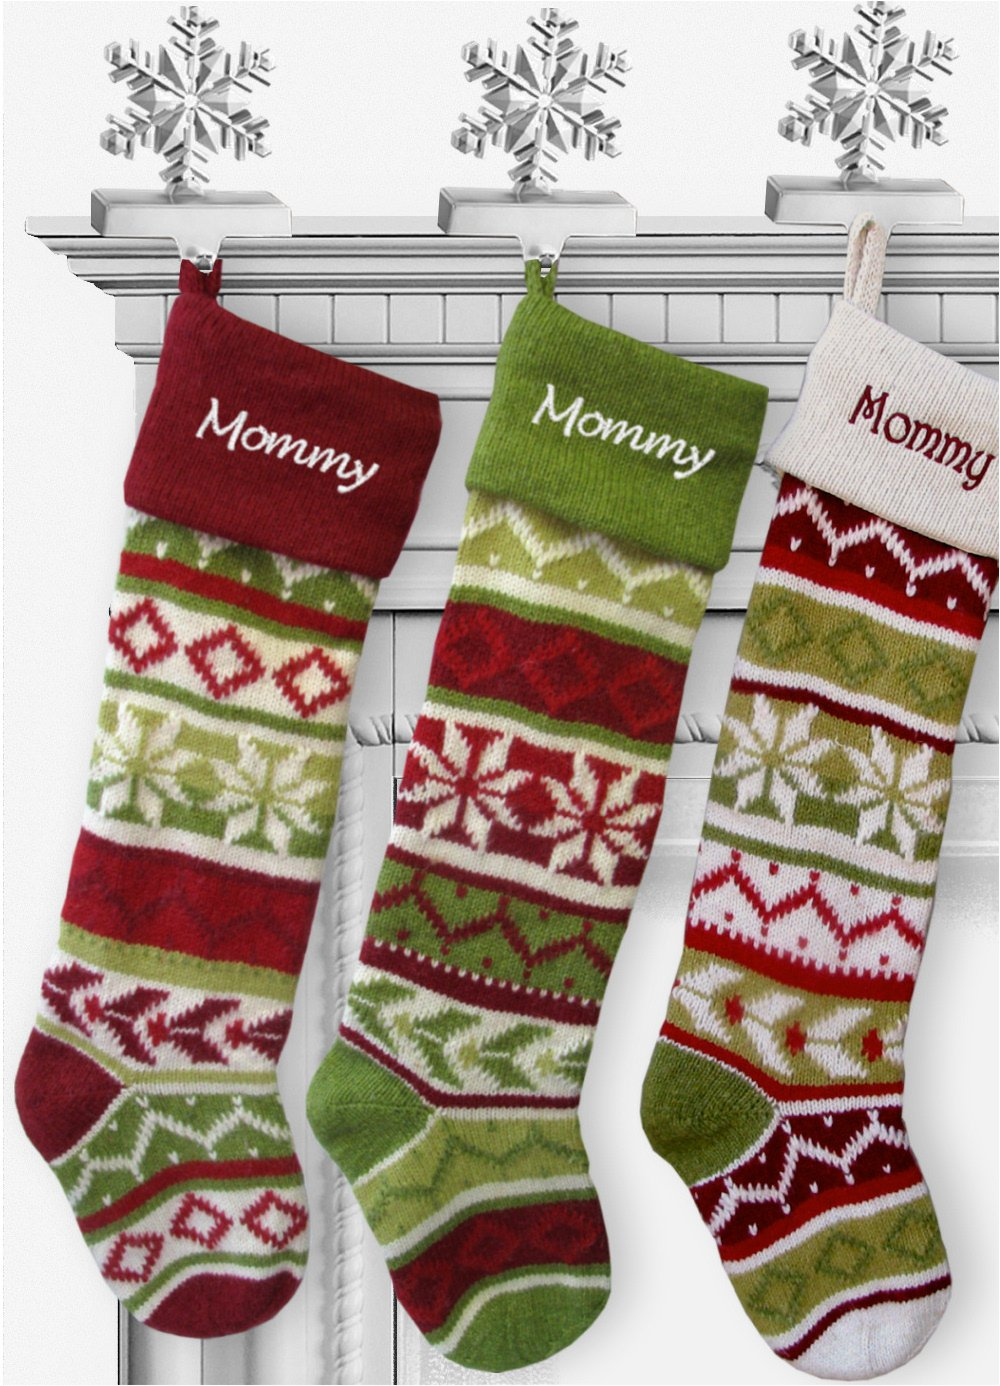 SET OF 5 Oversized 28'' Knitted Christmas Stockings FairIsle Knit + Monogram - CHOOSE YOUR DESIGNS - Embroidered with Choice of YOUR Names by CHRISTMAS-STOCKINGS-by-STOCKINGFACTORY (Image #7)